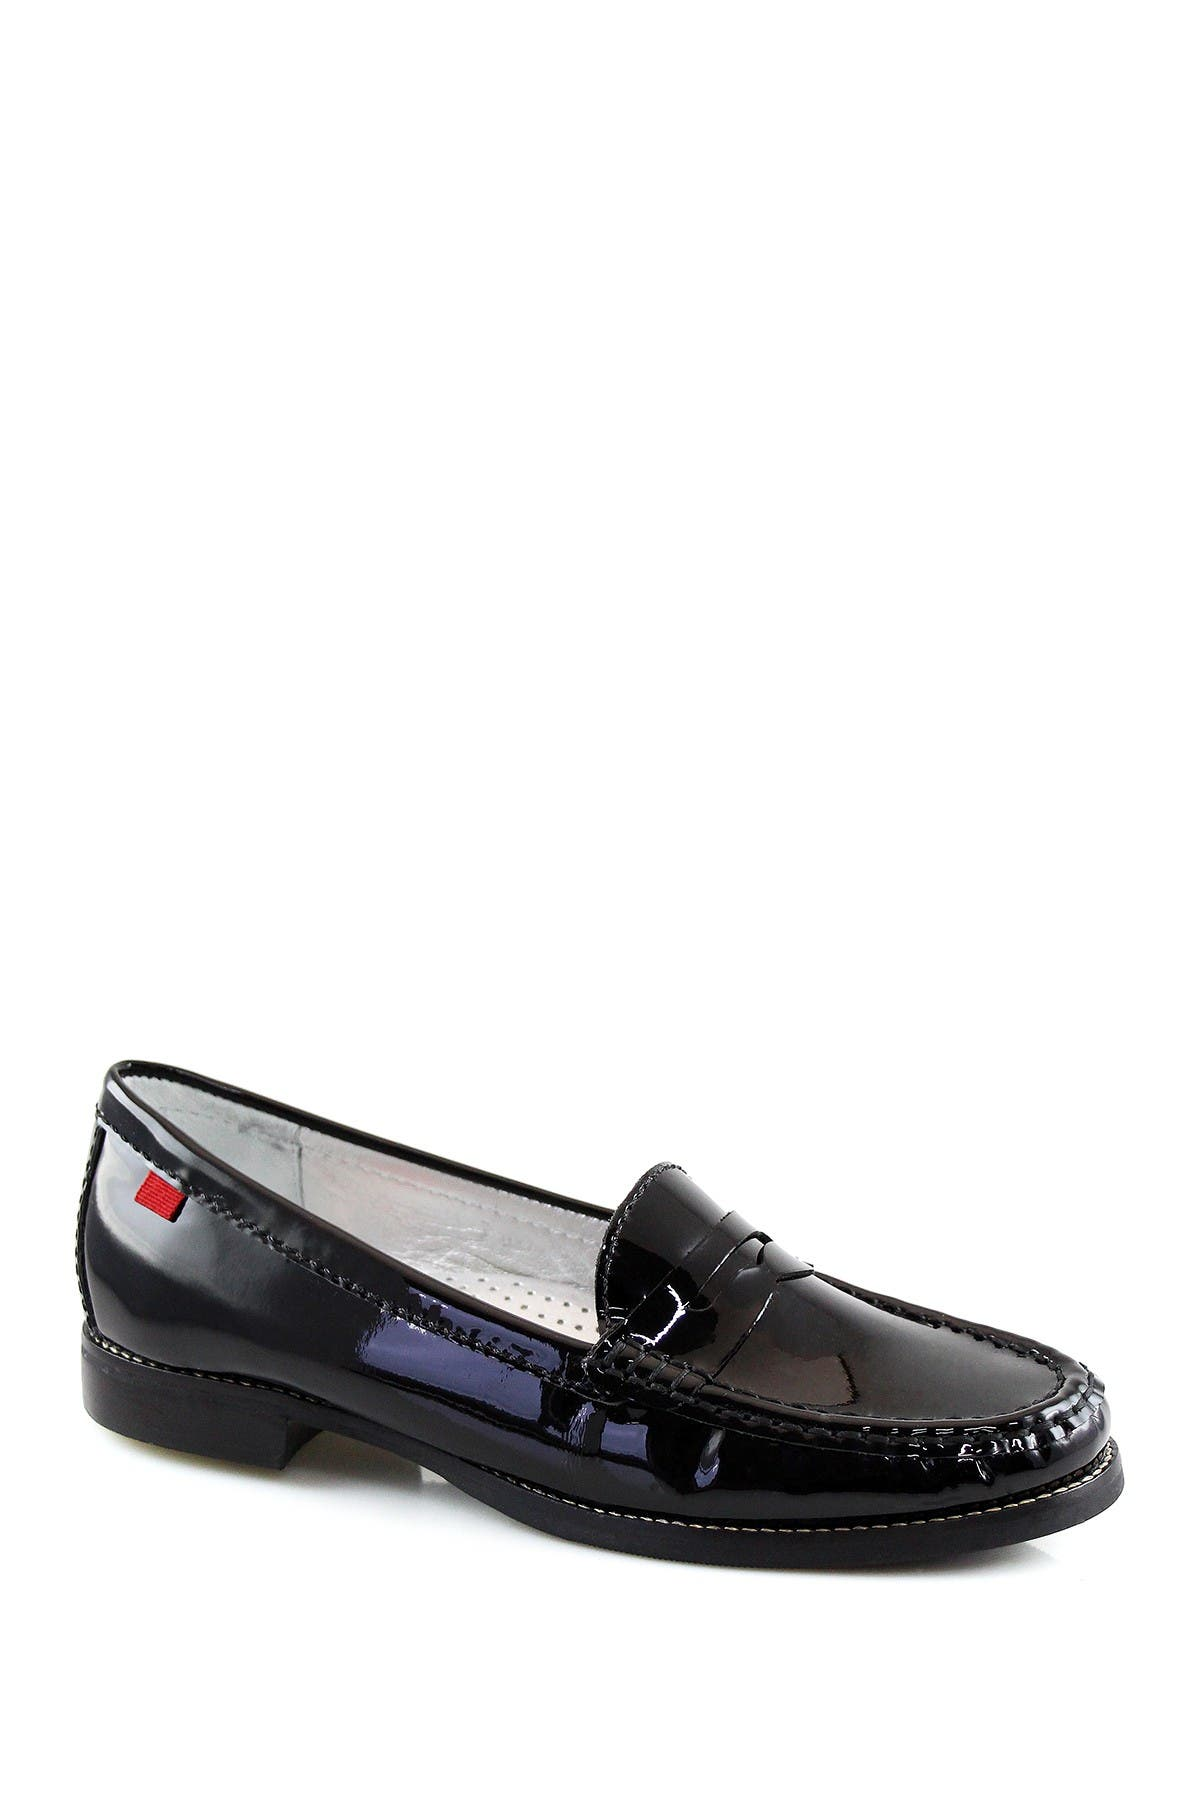 Image of Marc Joseph New York East Village Patent Leather Loafer